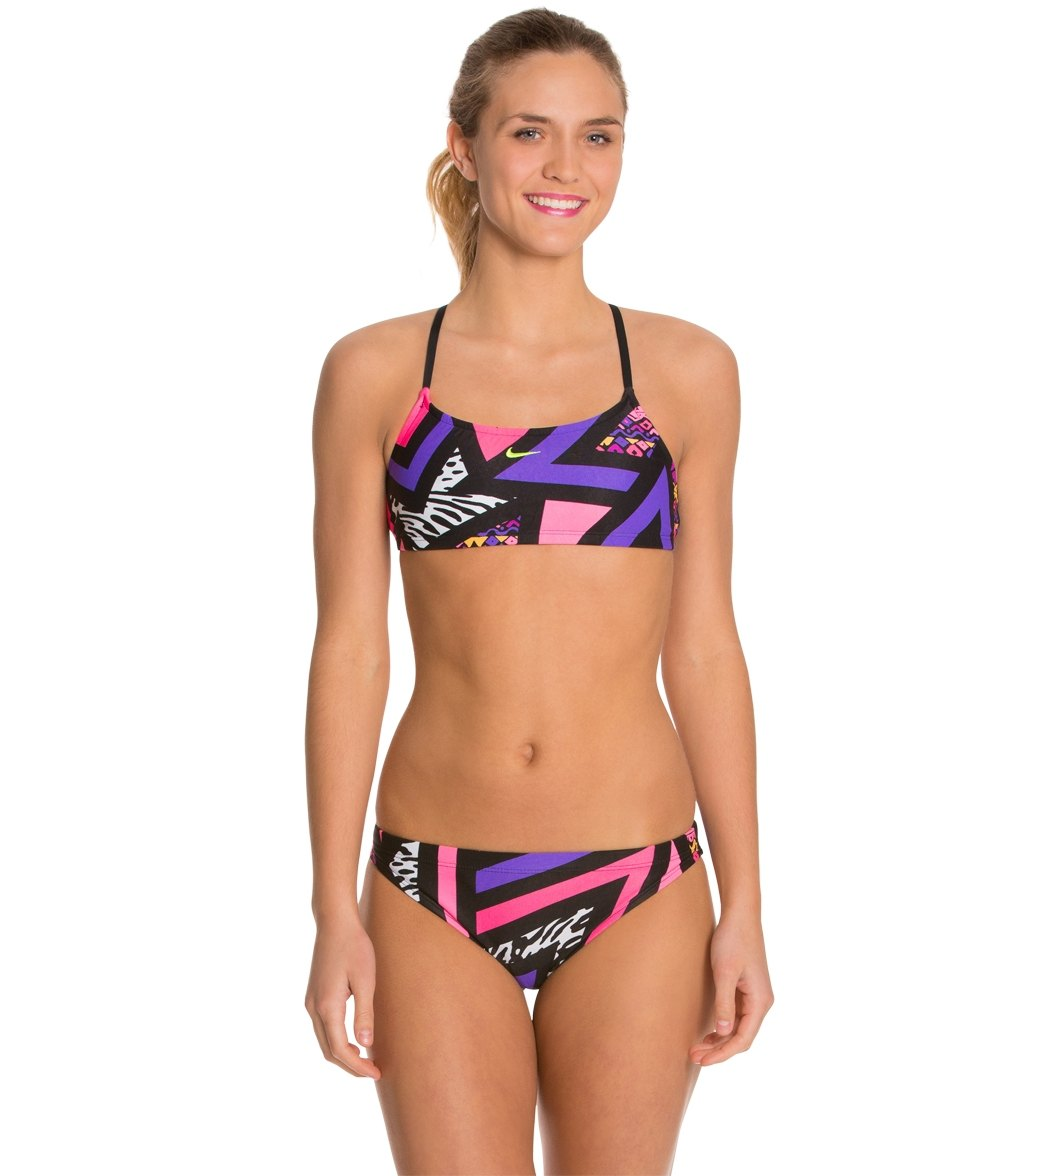 nike 2 piece swimsuit